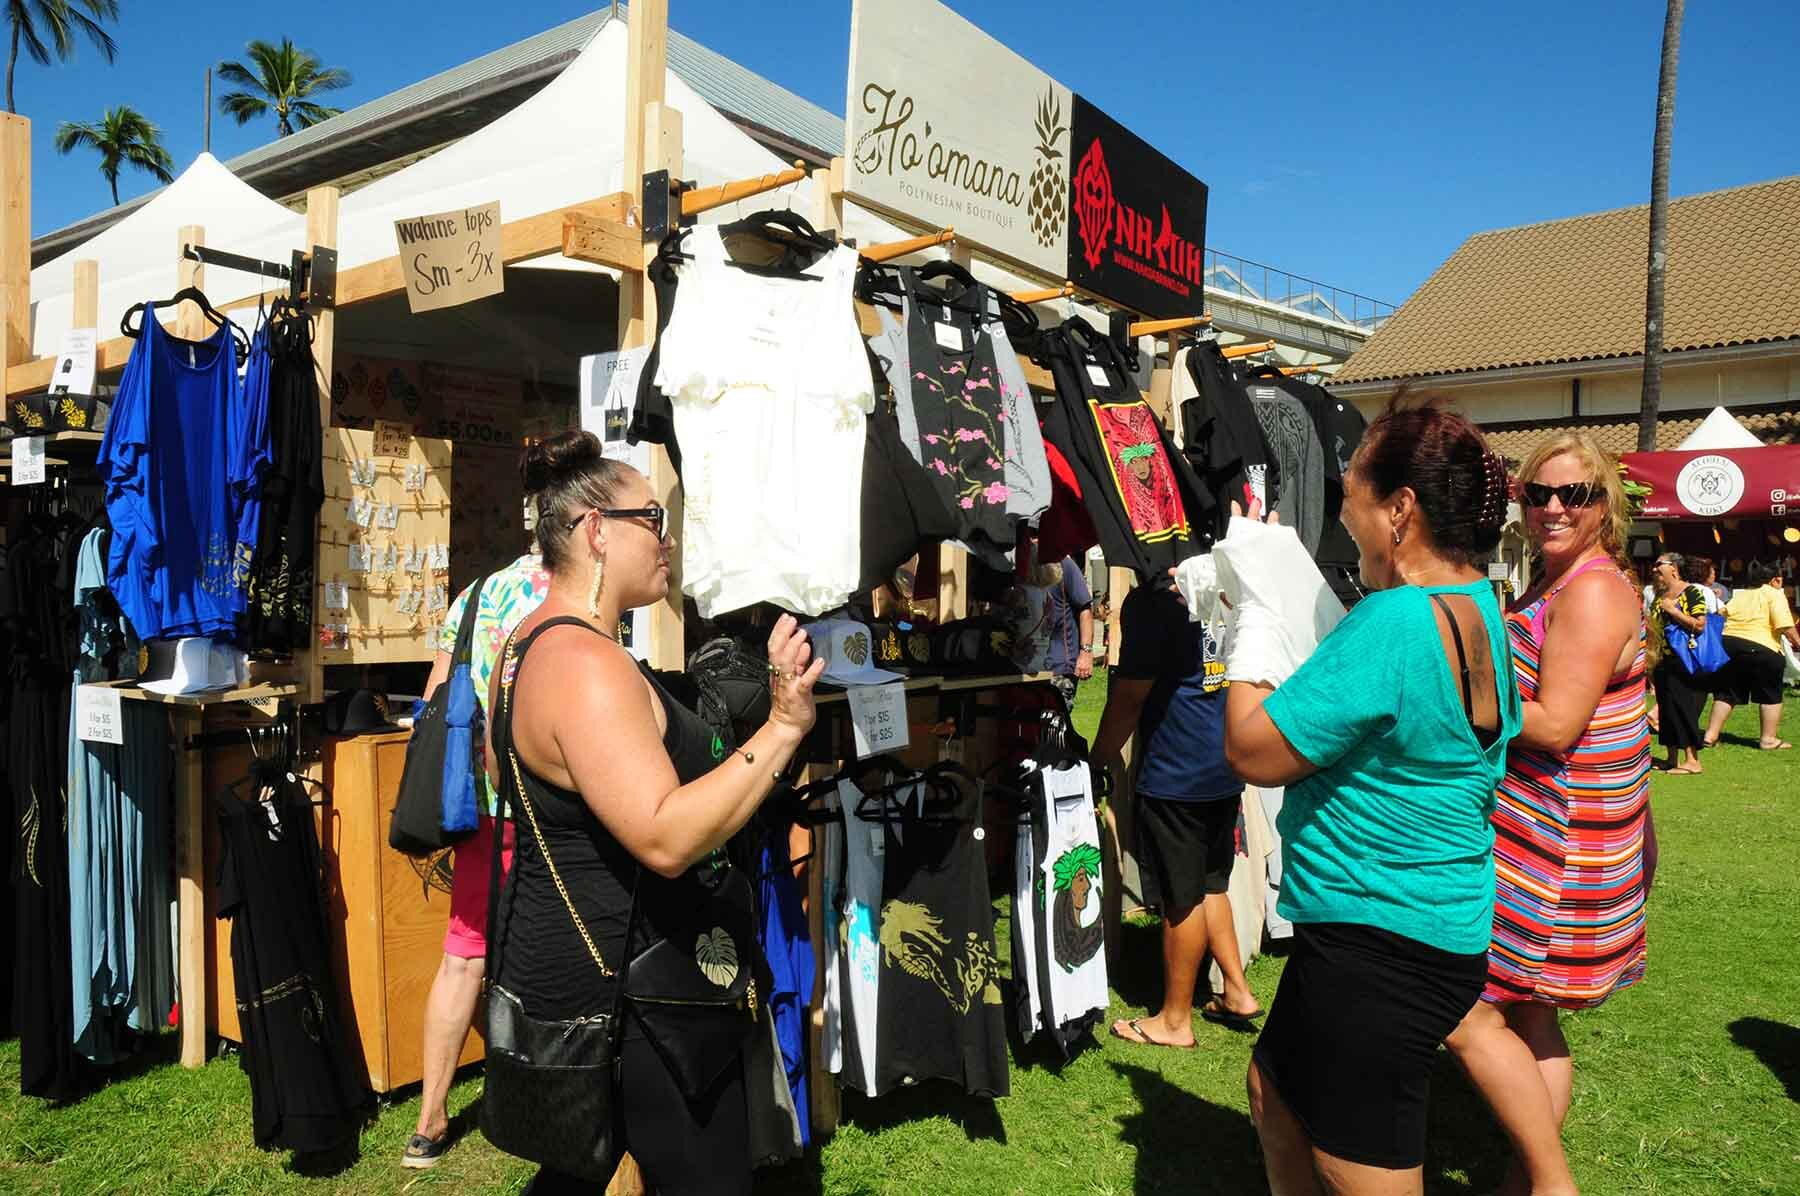 Festival sponsor-vendor Na Koa Brand will offer their popular Polynesian-inspired designs for men's, women's, children and infants' apparel and accessories.